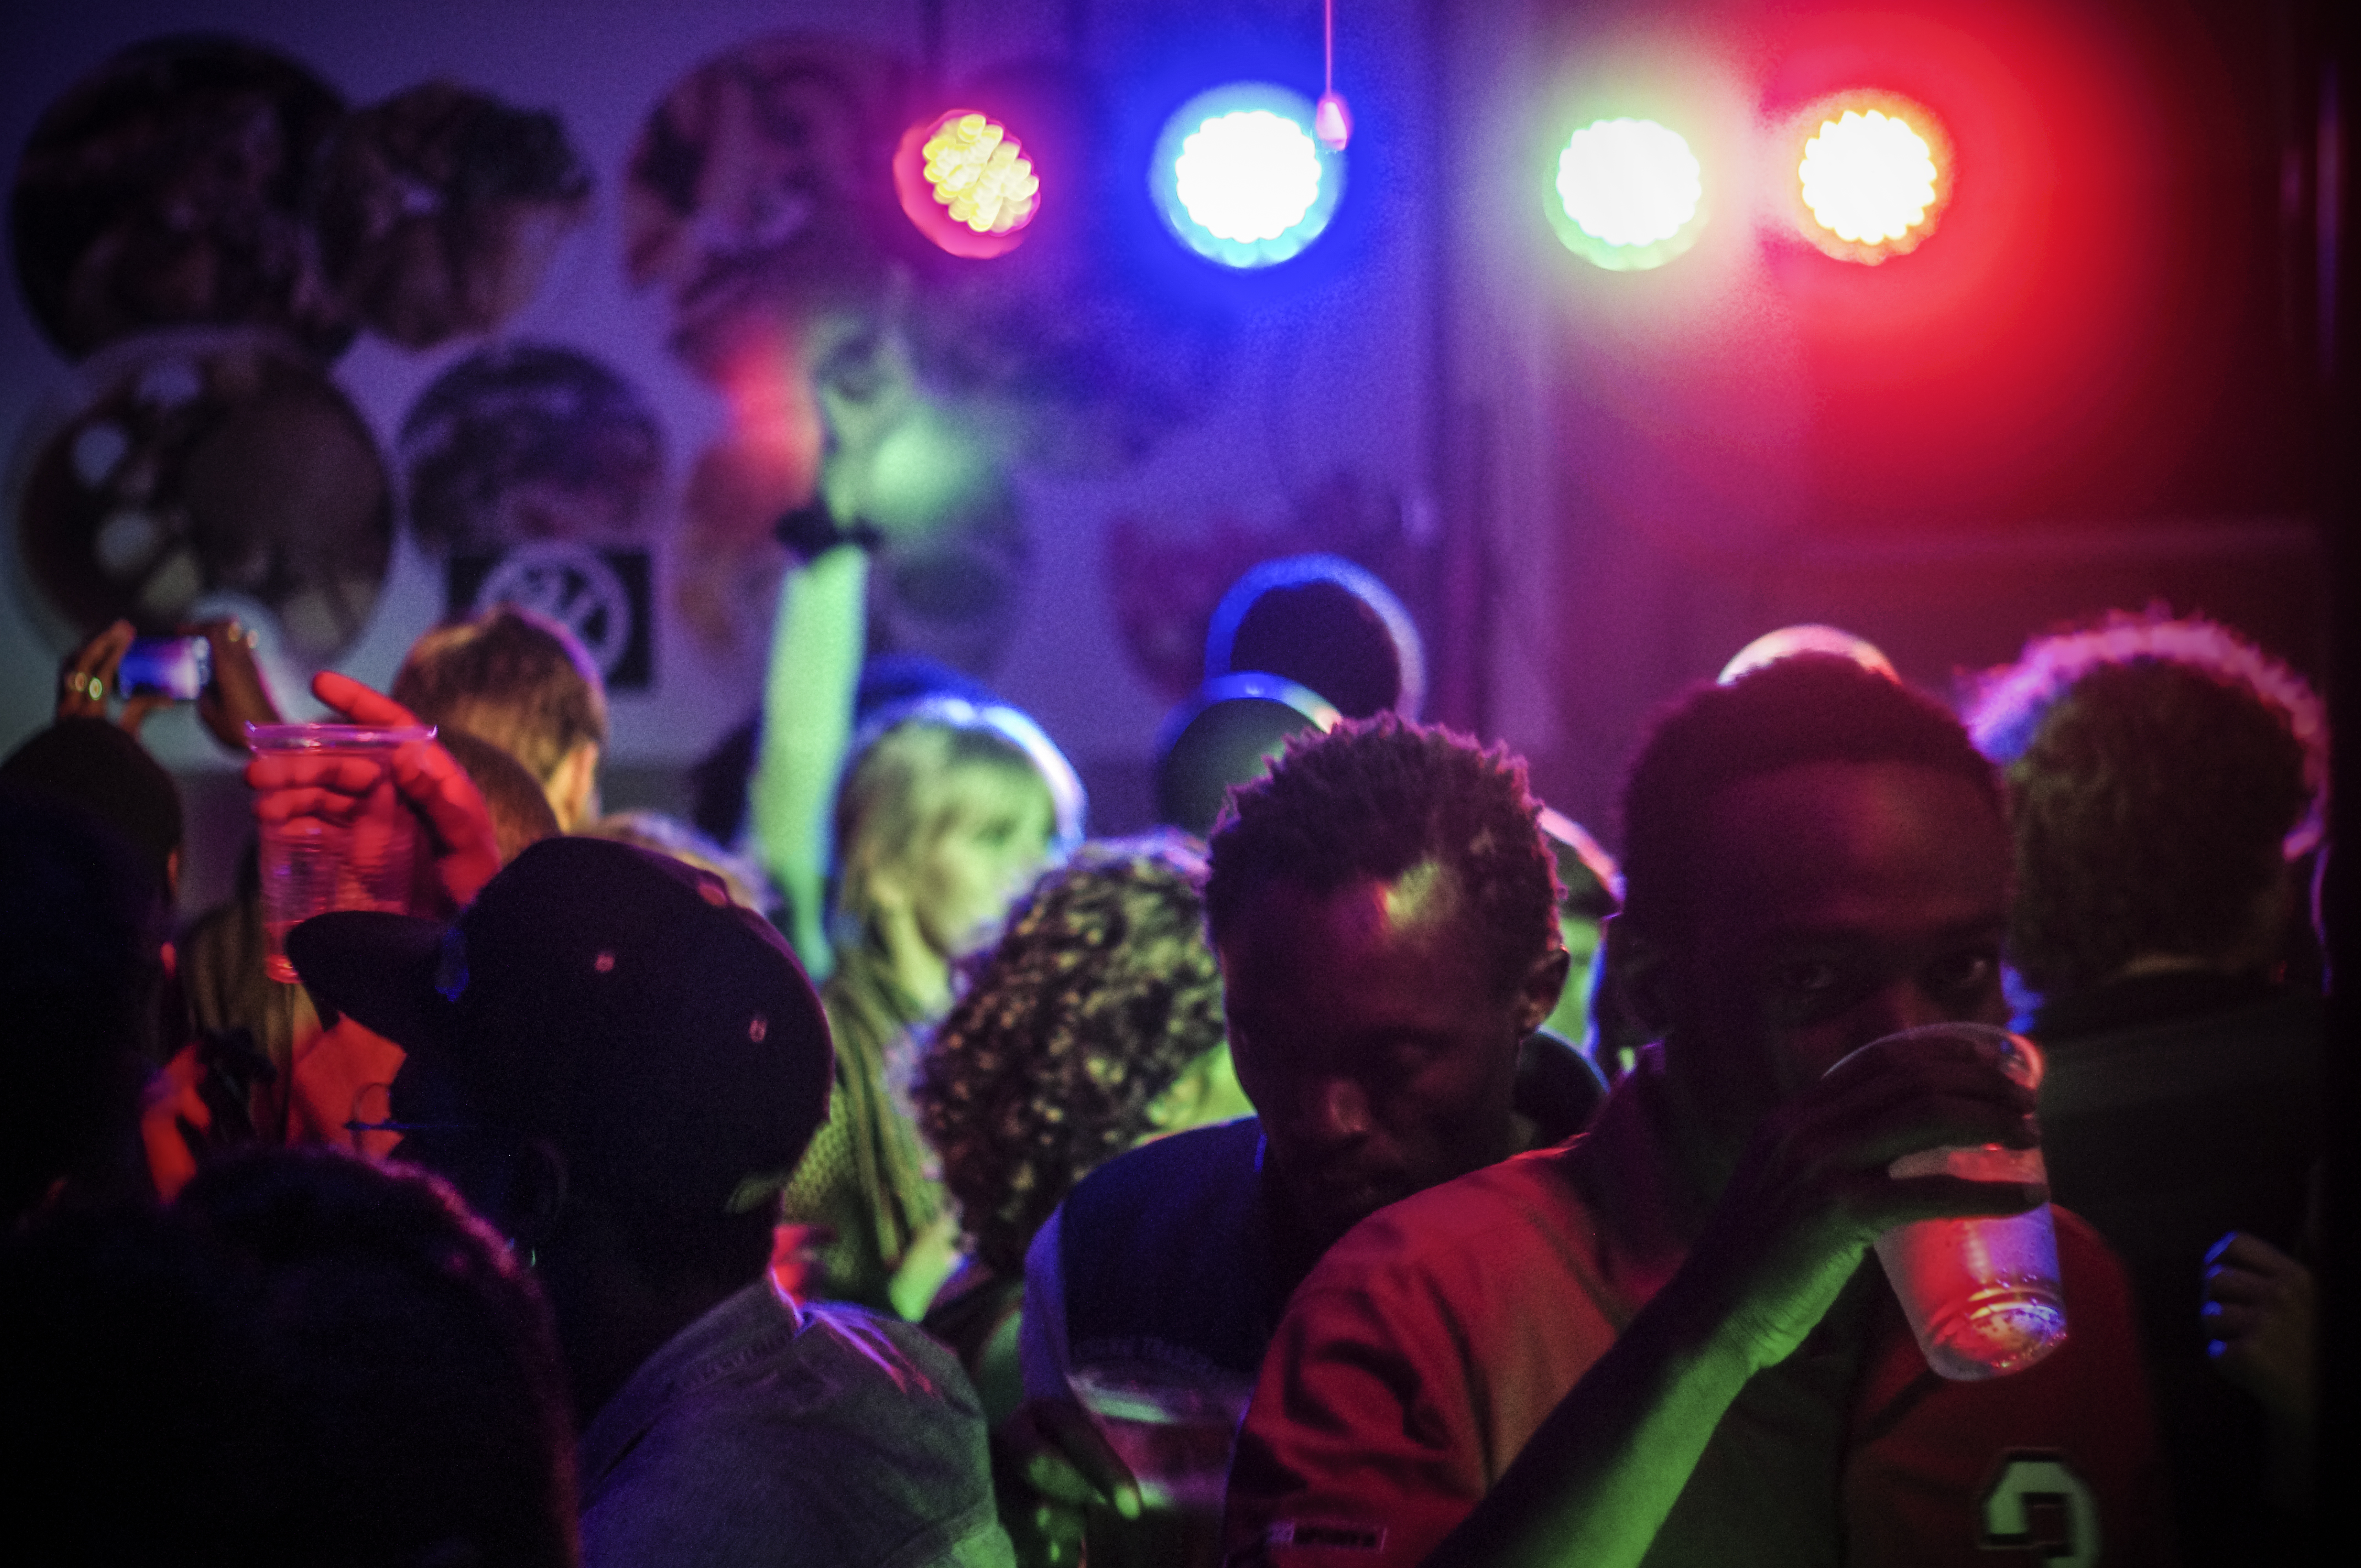 Una fiesta de Ten-Cities en el Pop Up Club de Nairobi. Fuente: © Lukas Richthammer